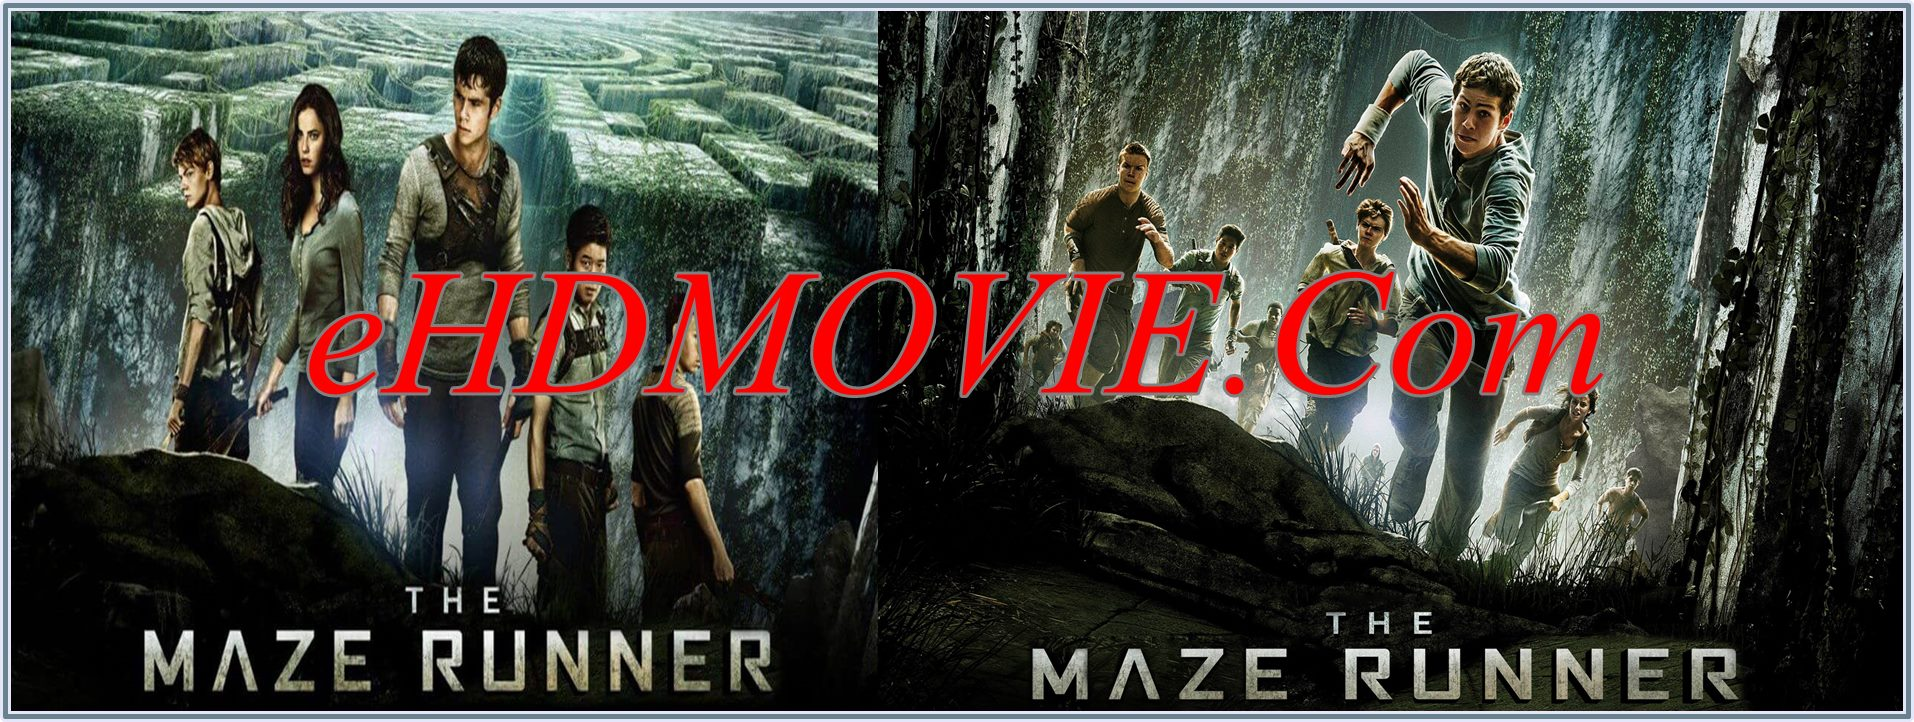 The Maze Runner 2014 Full Movie English 1080p - 720p - 480p ORG BRRip 400MB - 900MB - 2.2GB ESubs Free Download